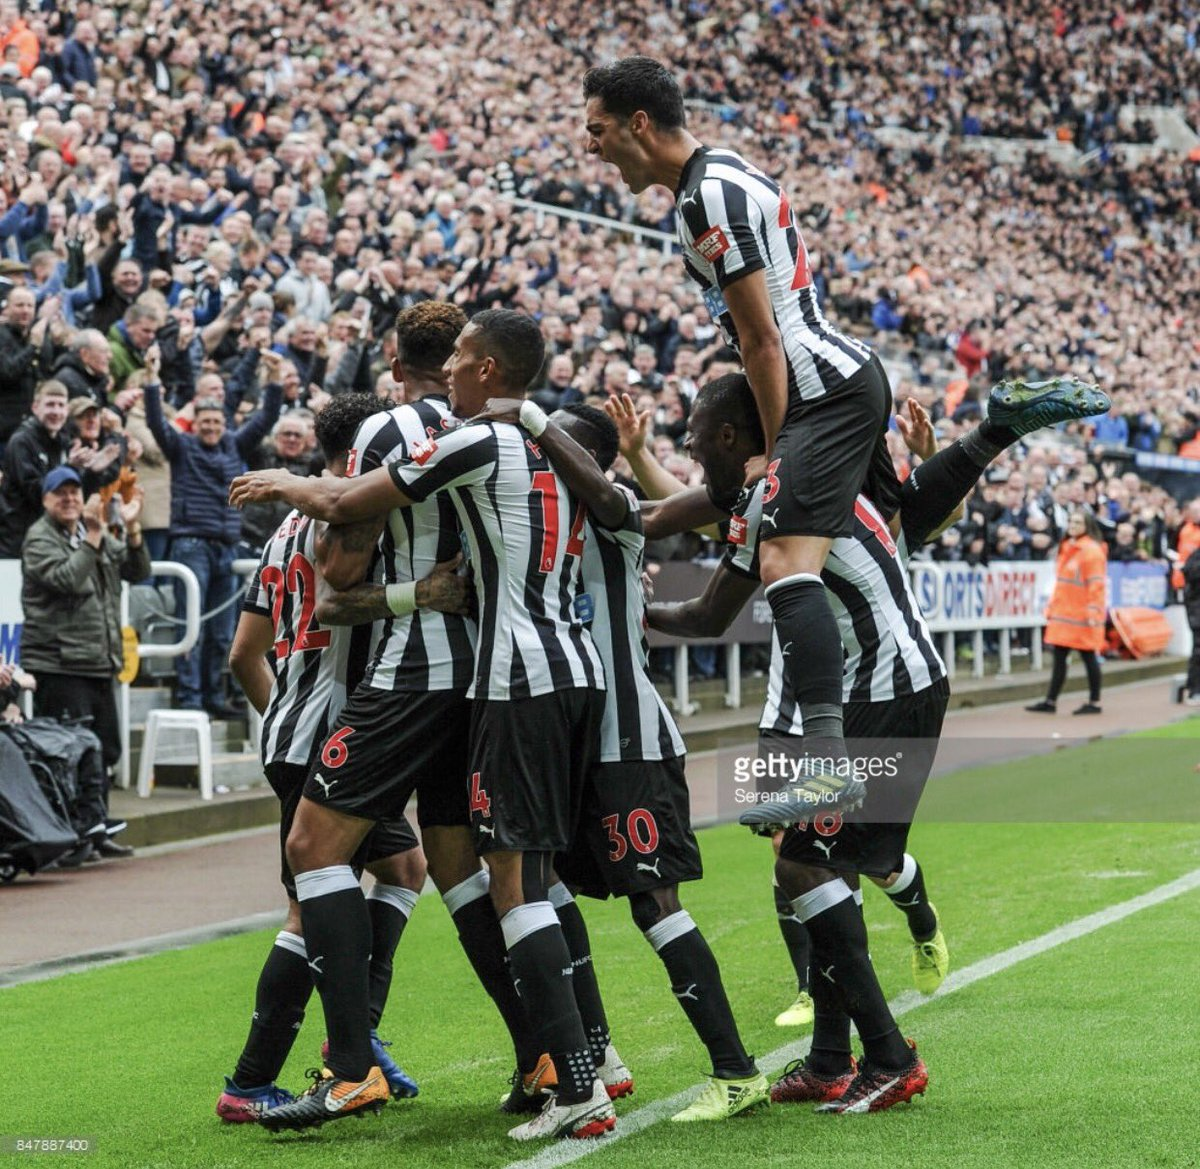 Another 3 solid points! we continue to work hard and learn for the future! Thank you for your support today! Enjoy your weekends #NUFC <br>http://pic.twitter.com/pVizhdPB3A